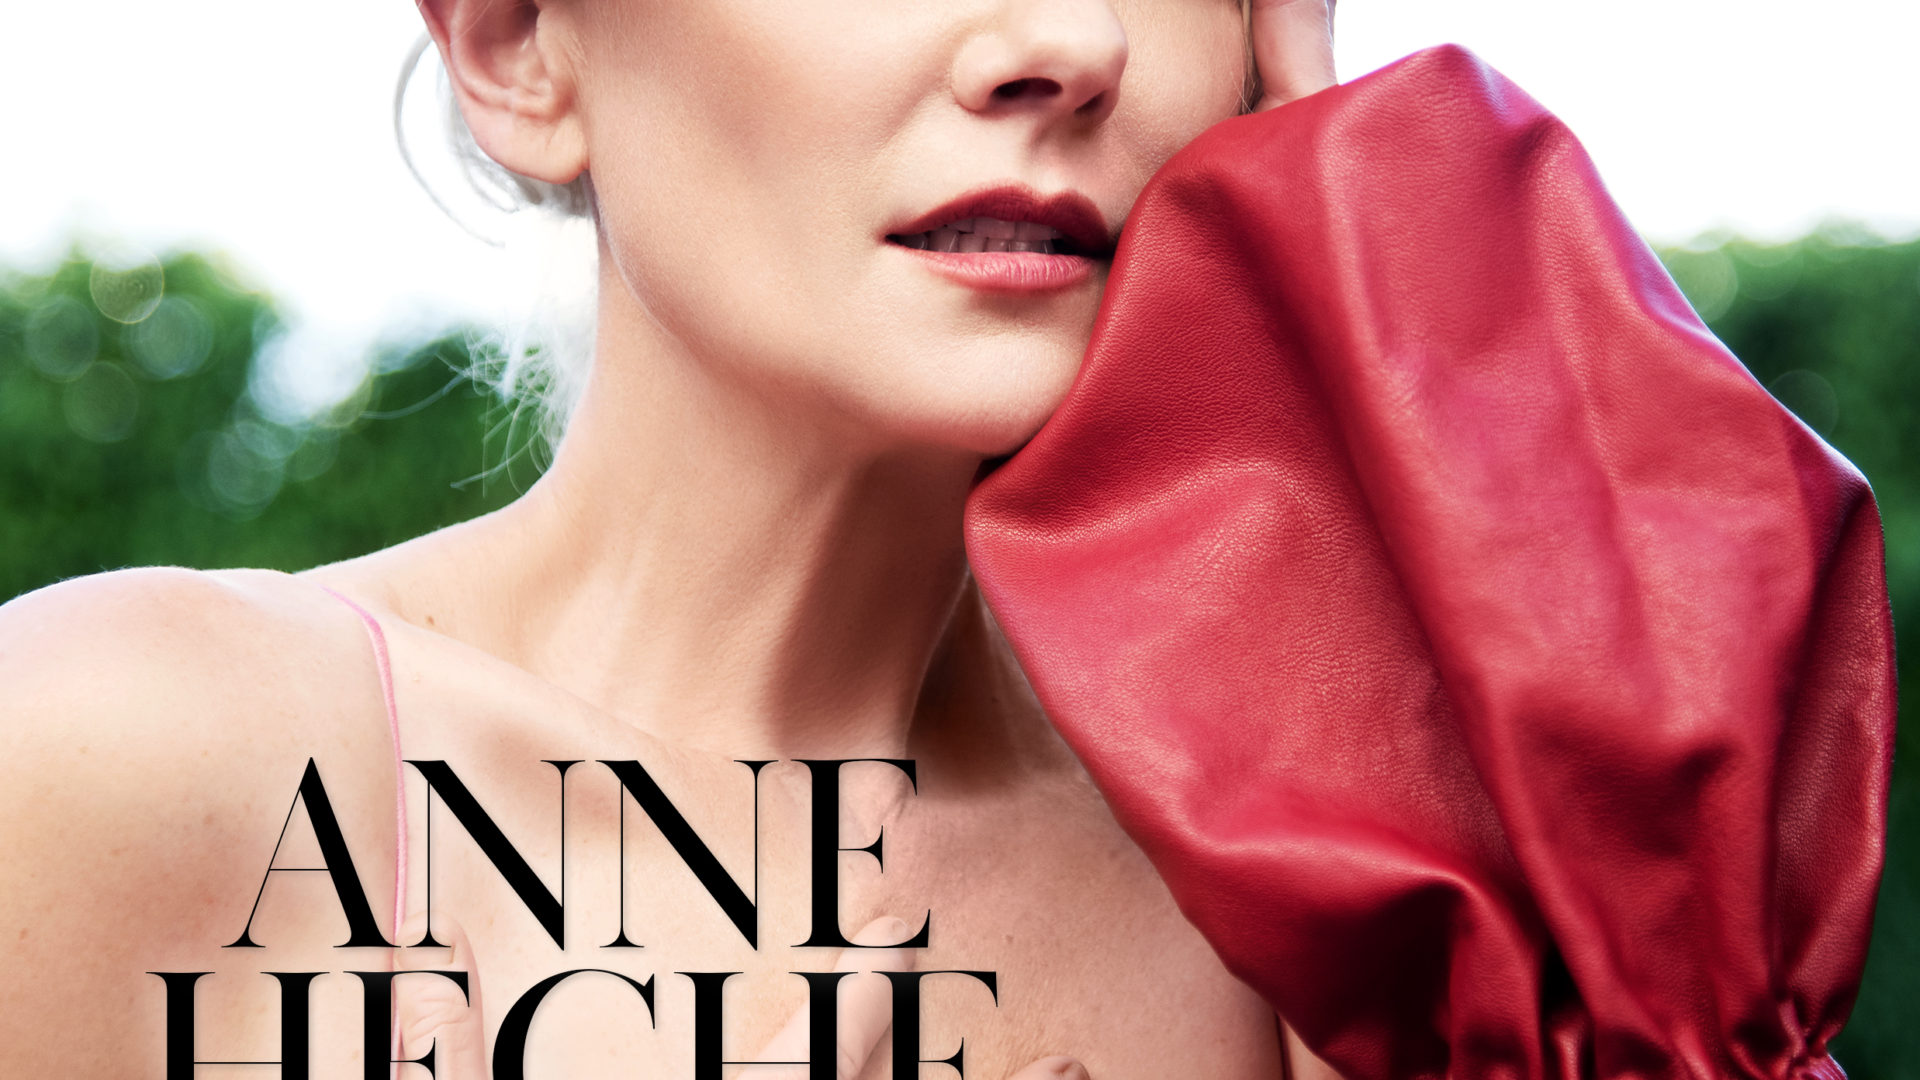 Actress, ANNE HECHE: Interview with the Hollywood Beauty Guru ROBYN NEWMARK